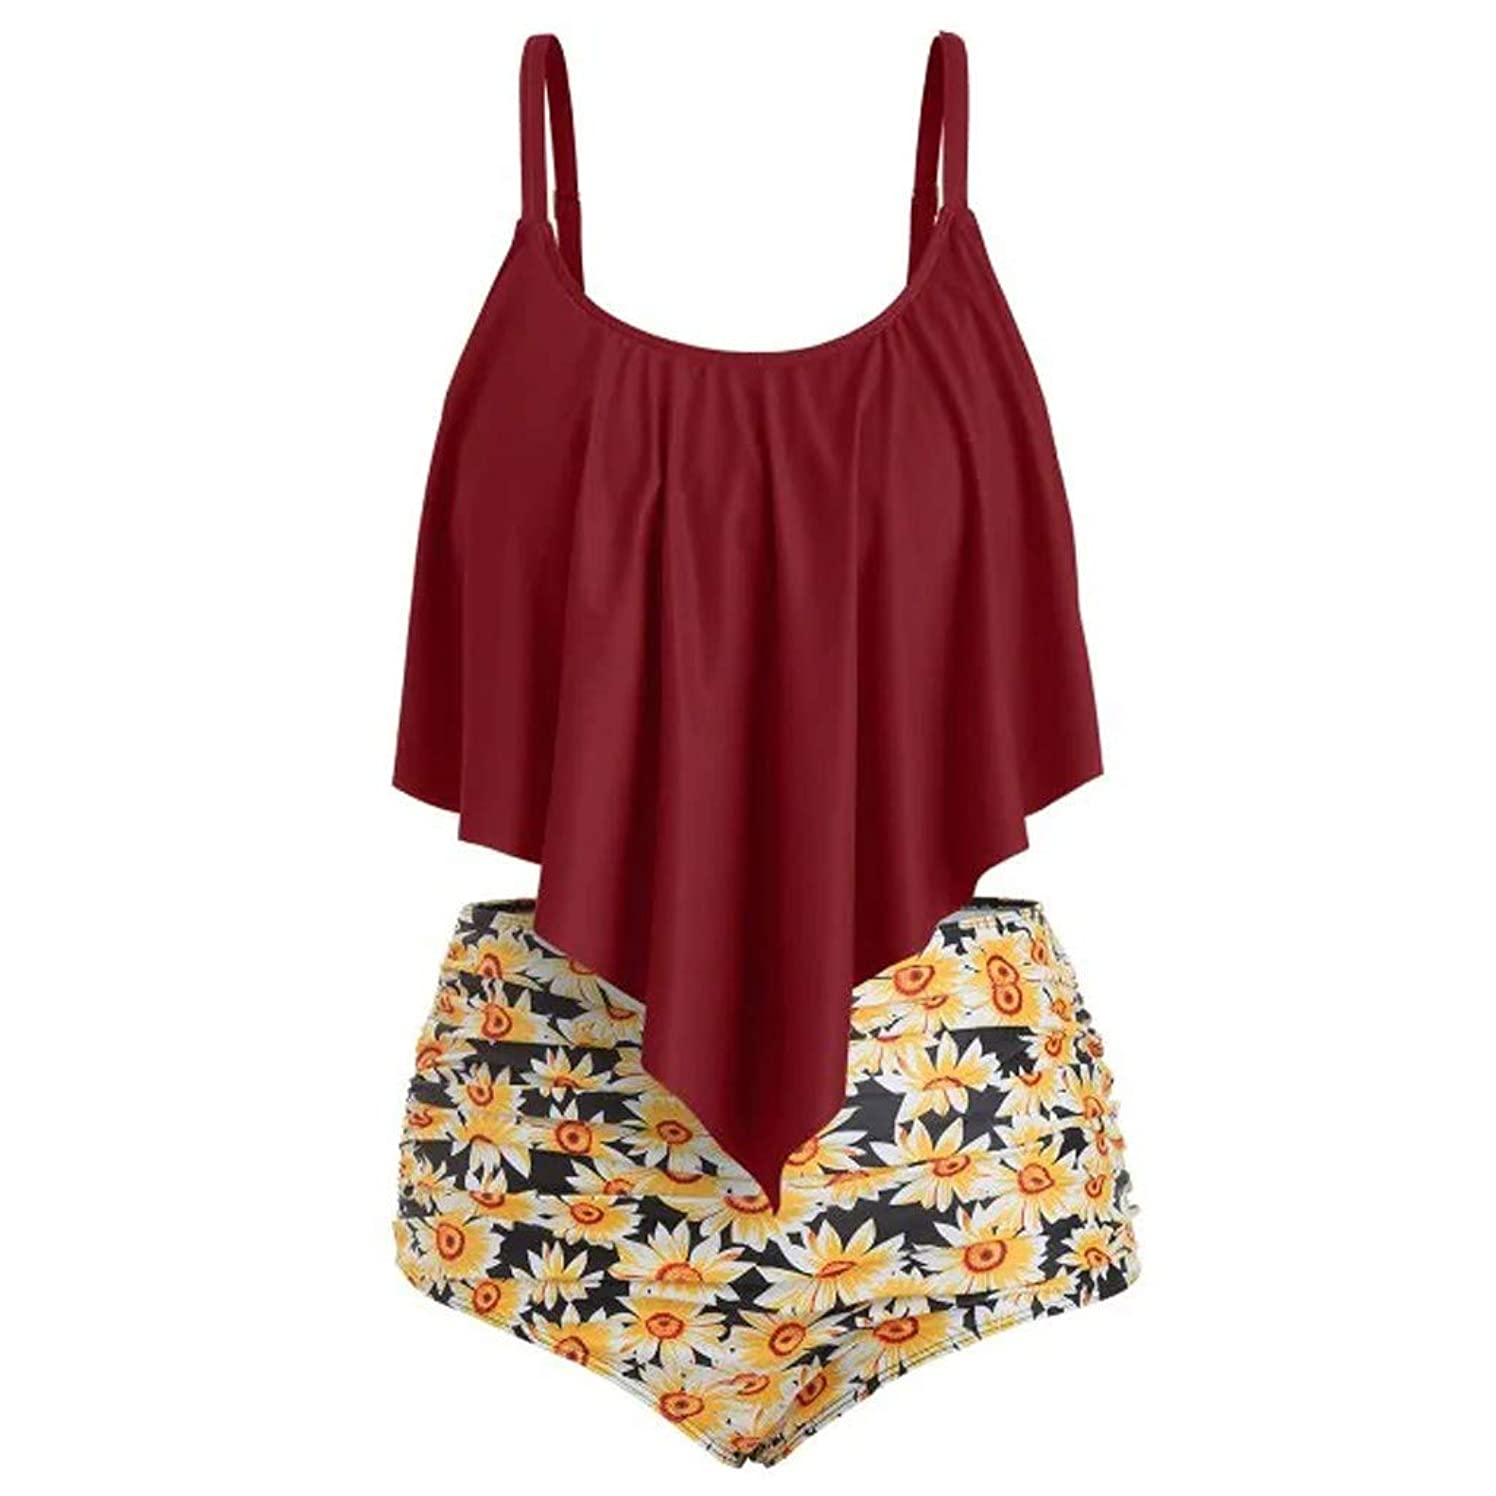 Pervobs Women Sexy 2PC Swimsuit Floral Print Bathing Suits Camis Ruffled Top with High Waisted Bottom Bikini Set